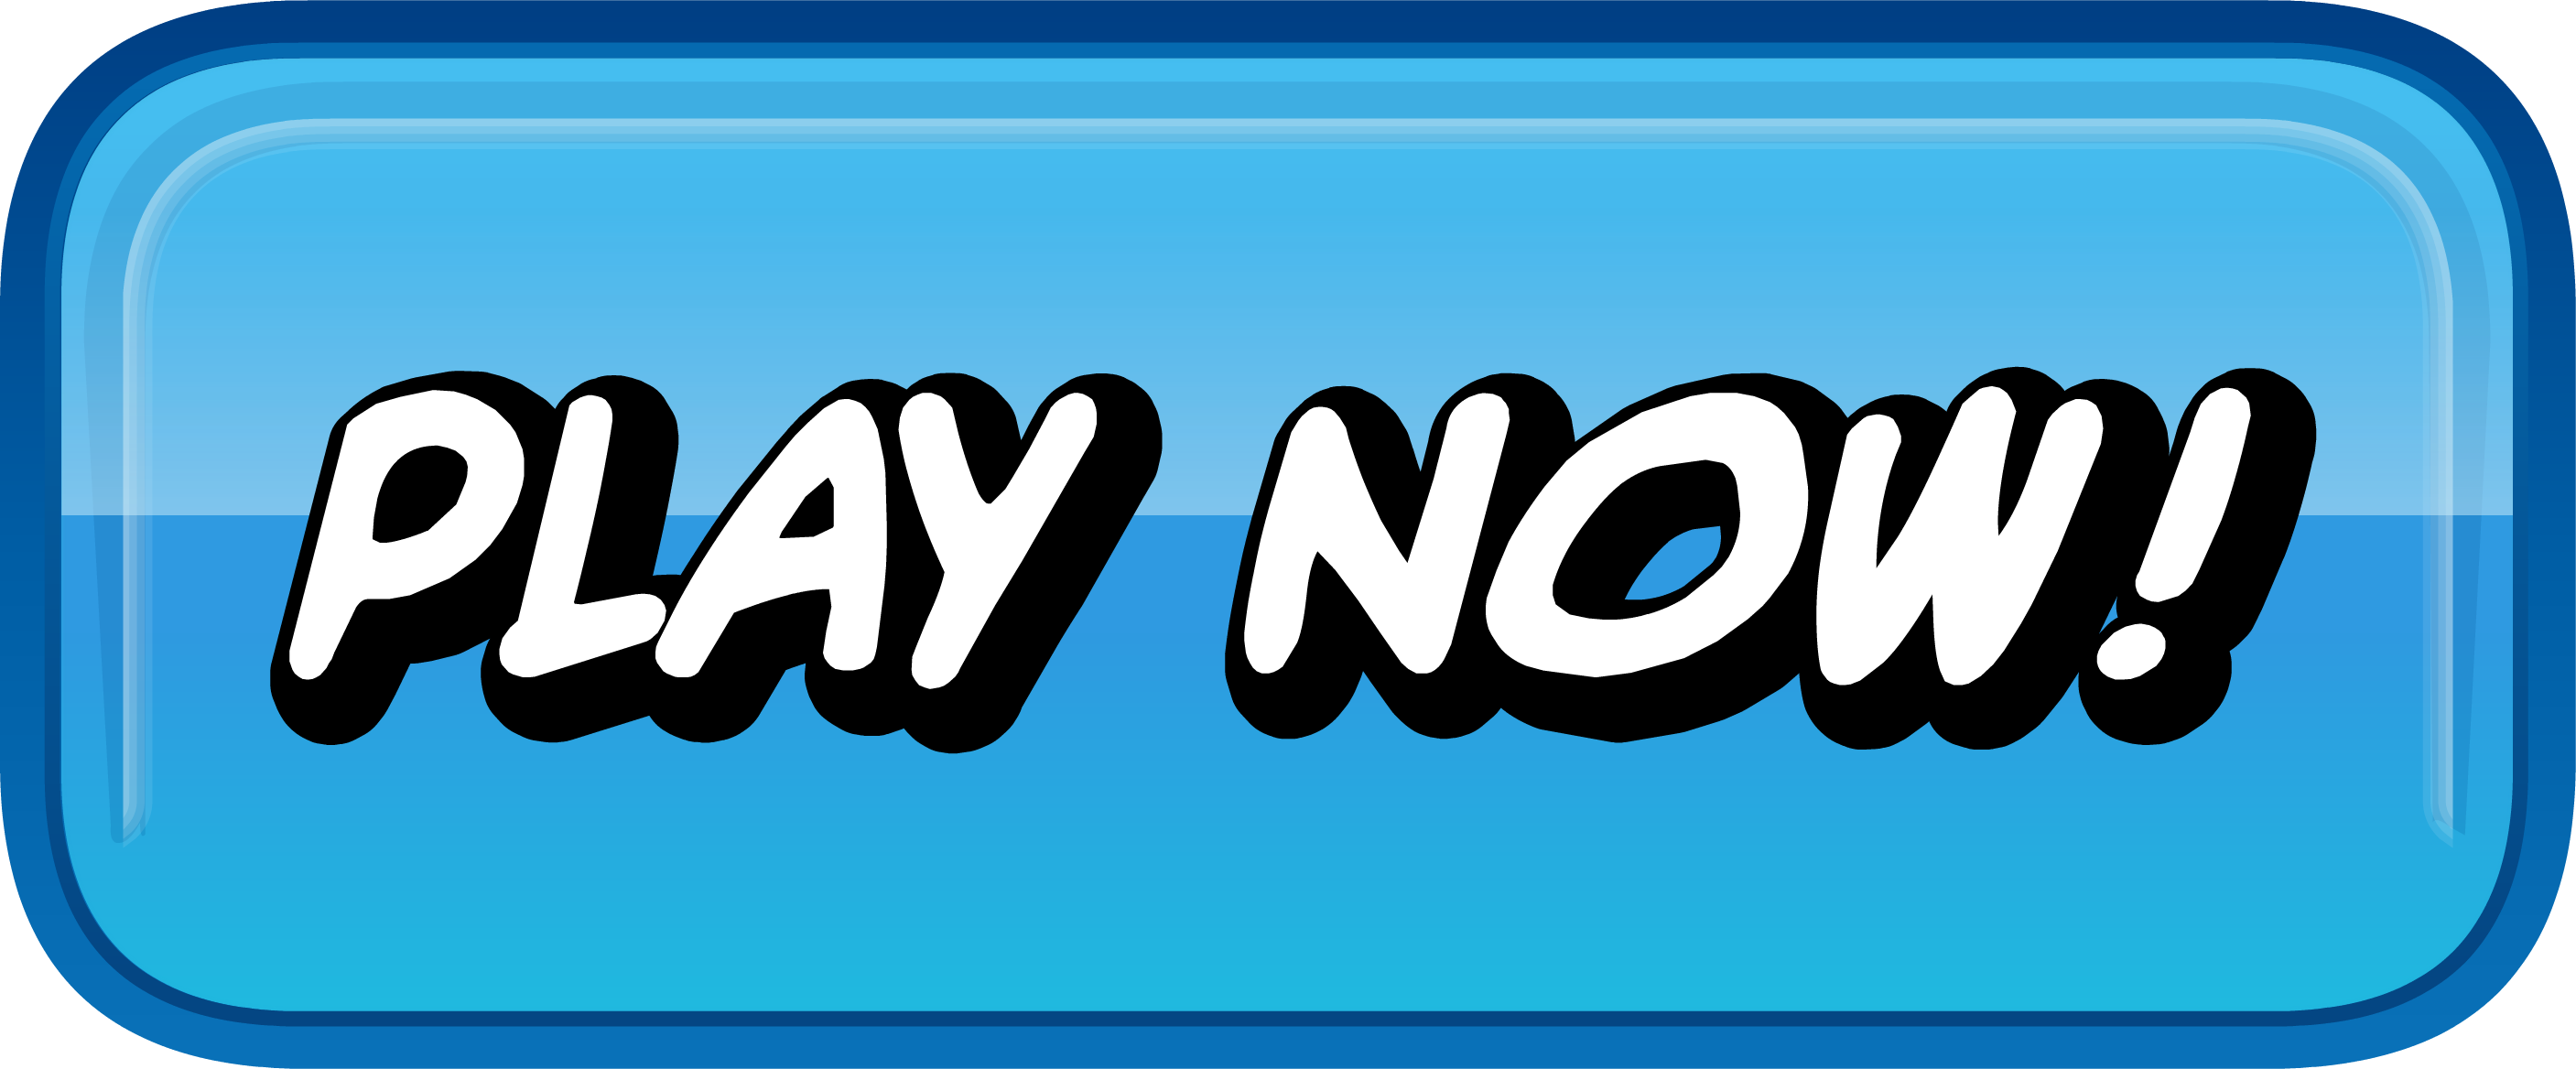 Express Bonus Bingo Online Games | Play NOW! | StarGames Casino